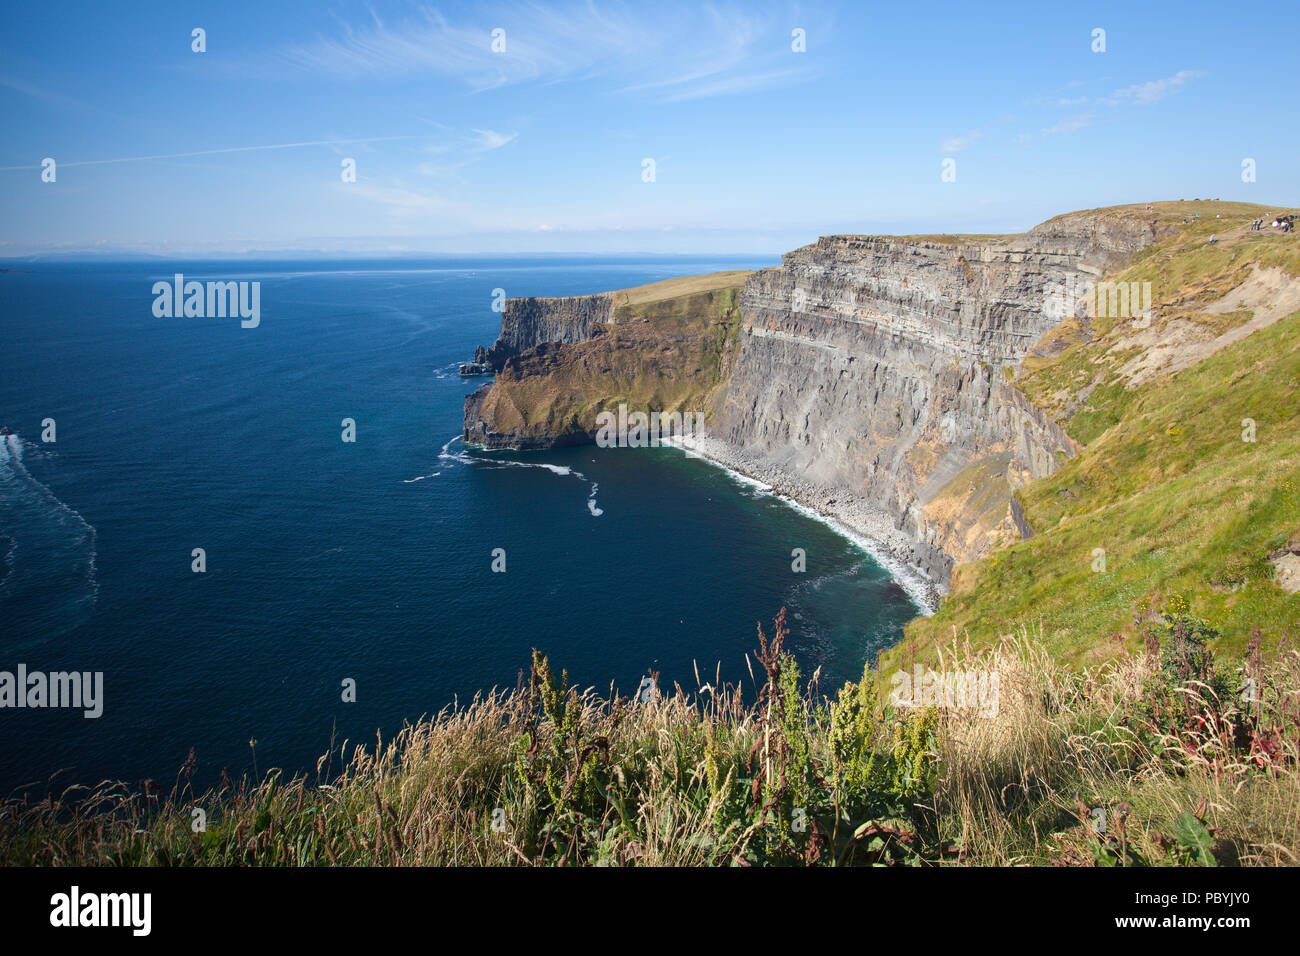 The famous Cliffs of Moher are sea cliffs located at the southwestern edge of the Burren region in County Clare, Ireland. They run for about 14 kilome - Stock Image